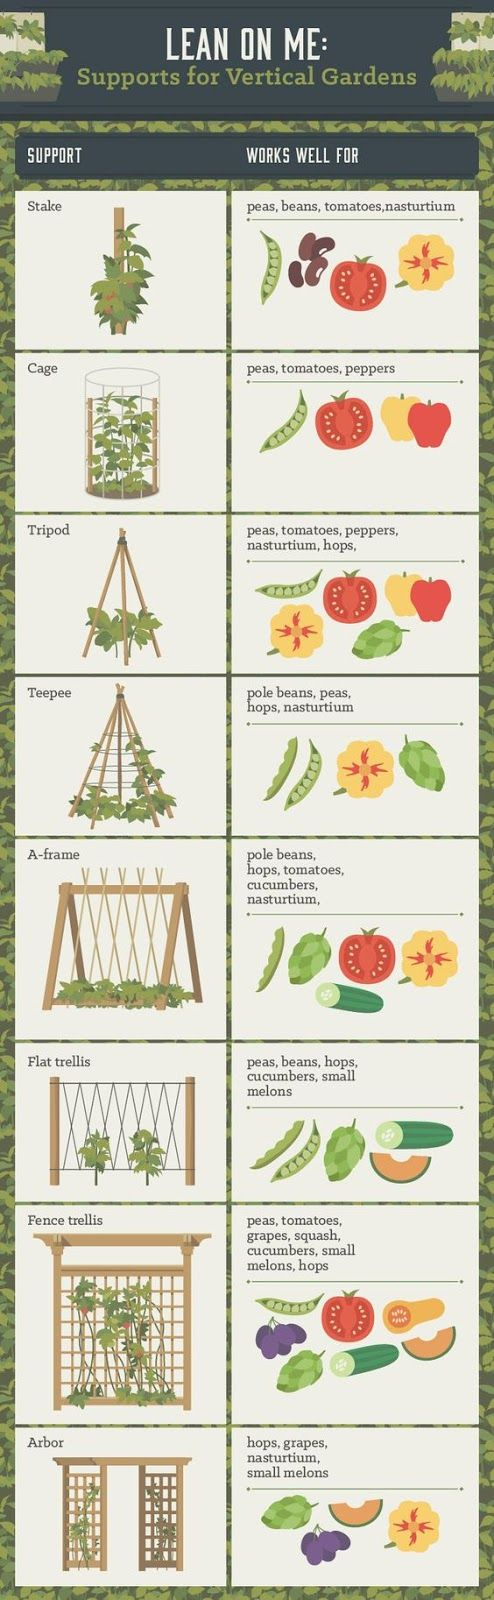 Best 25+ Trellis ideas ideas on Pinterest | Trellis, Flower vines ...